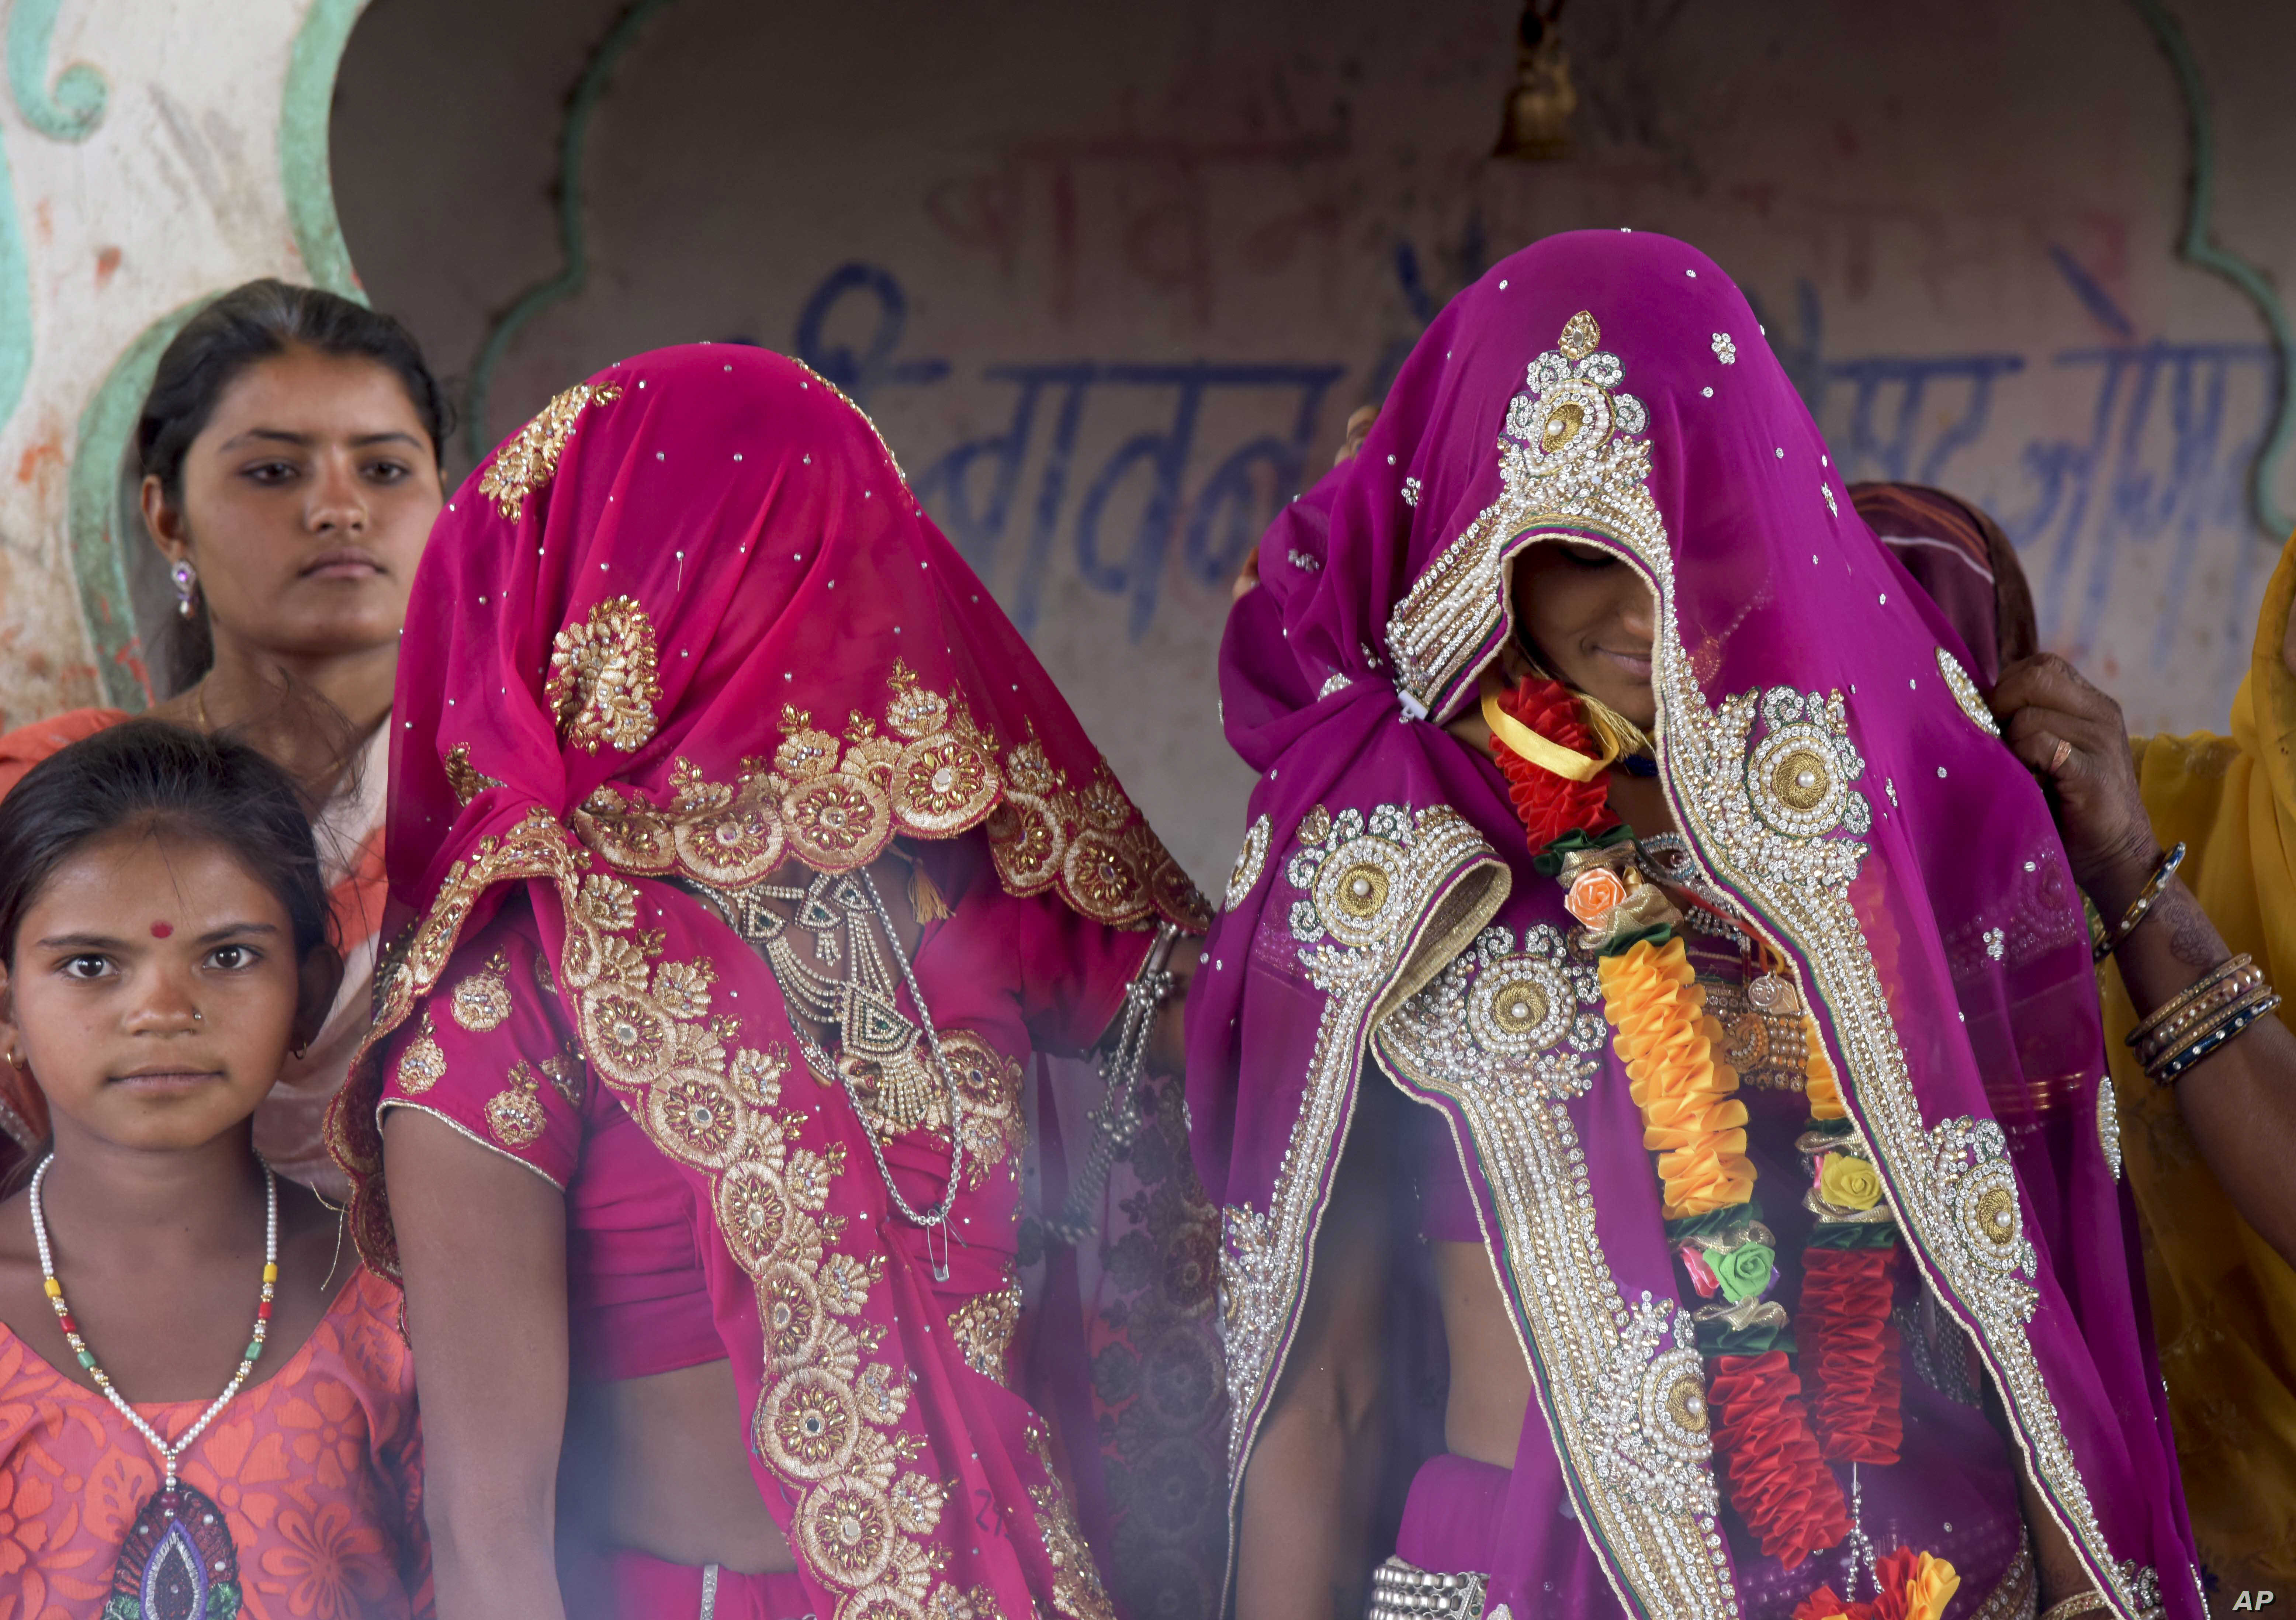 World Risks Missing Goal of Ending Child Marriage by 2030